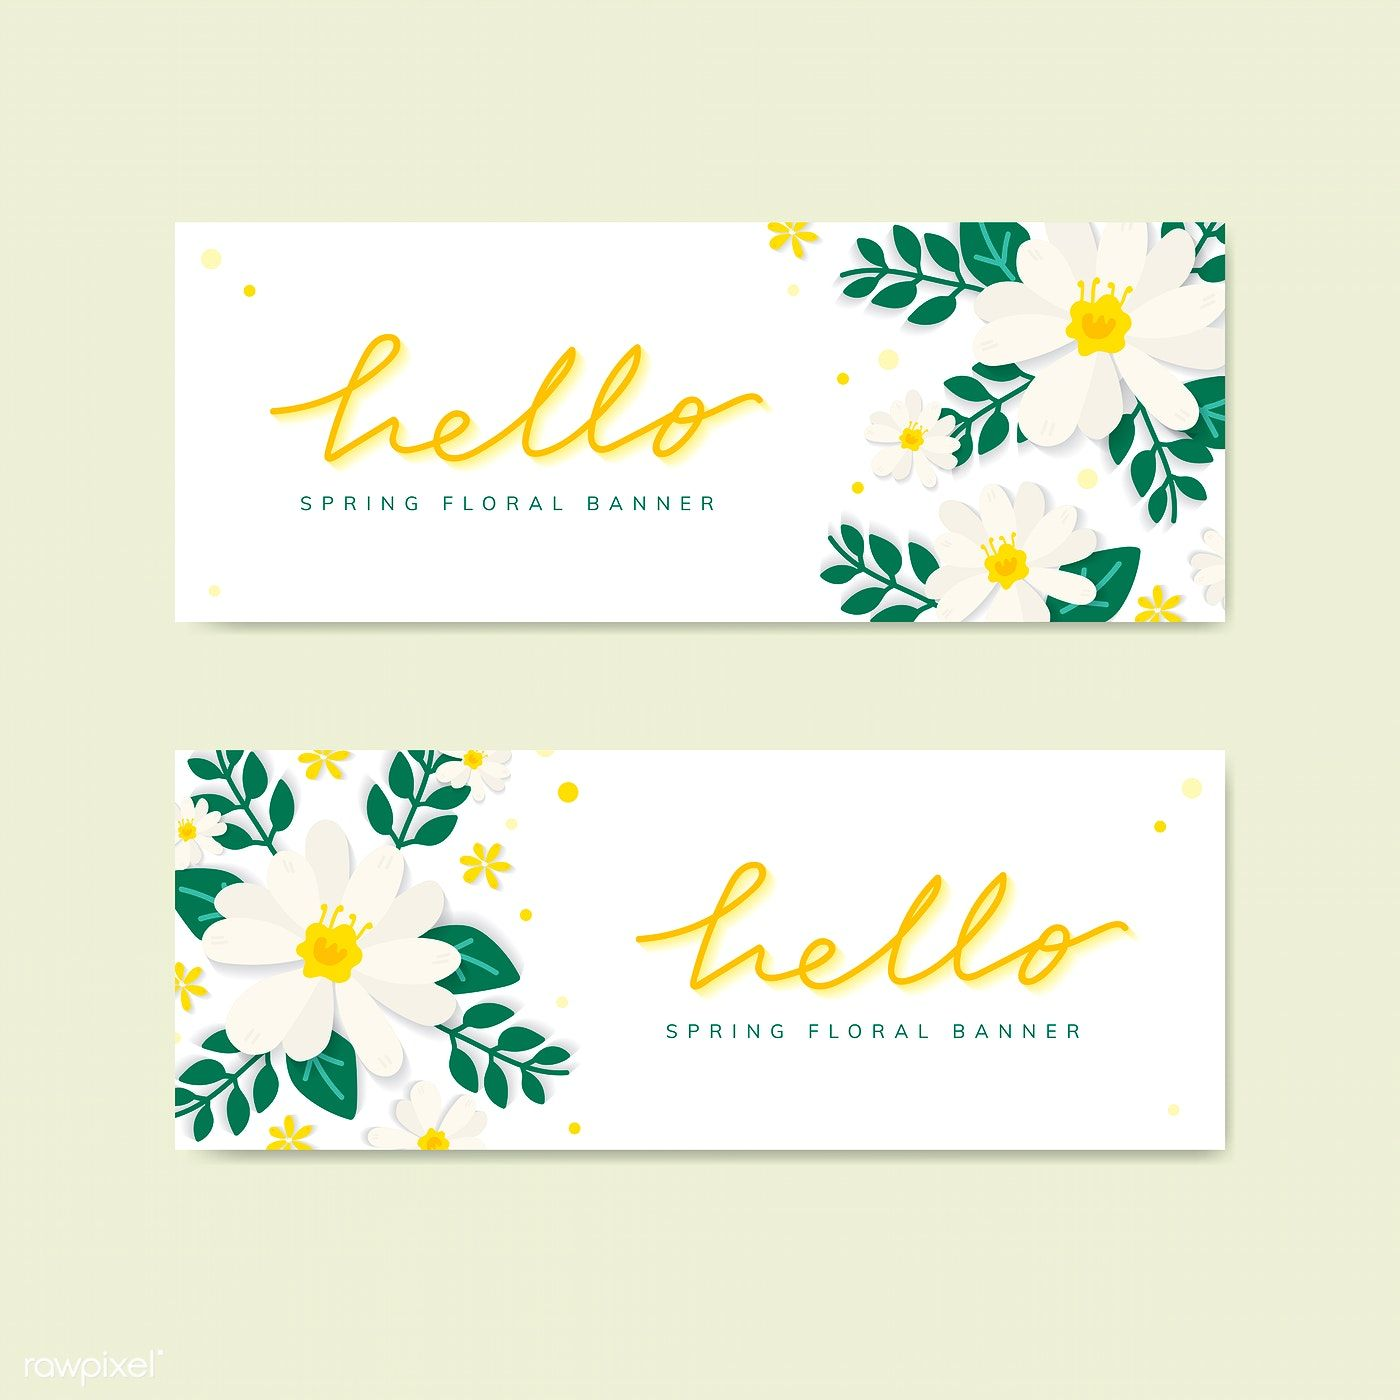 Hello Spring Floral Banner Vector Free Image By Rawpixel Com